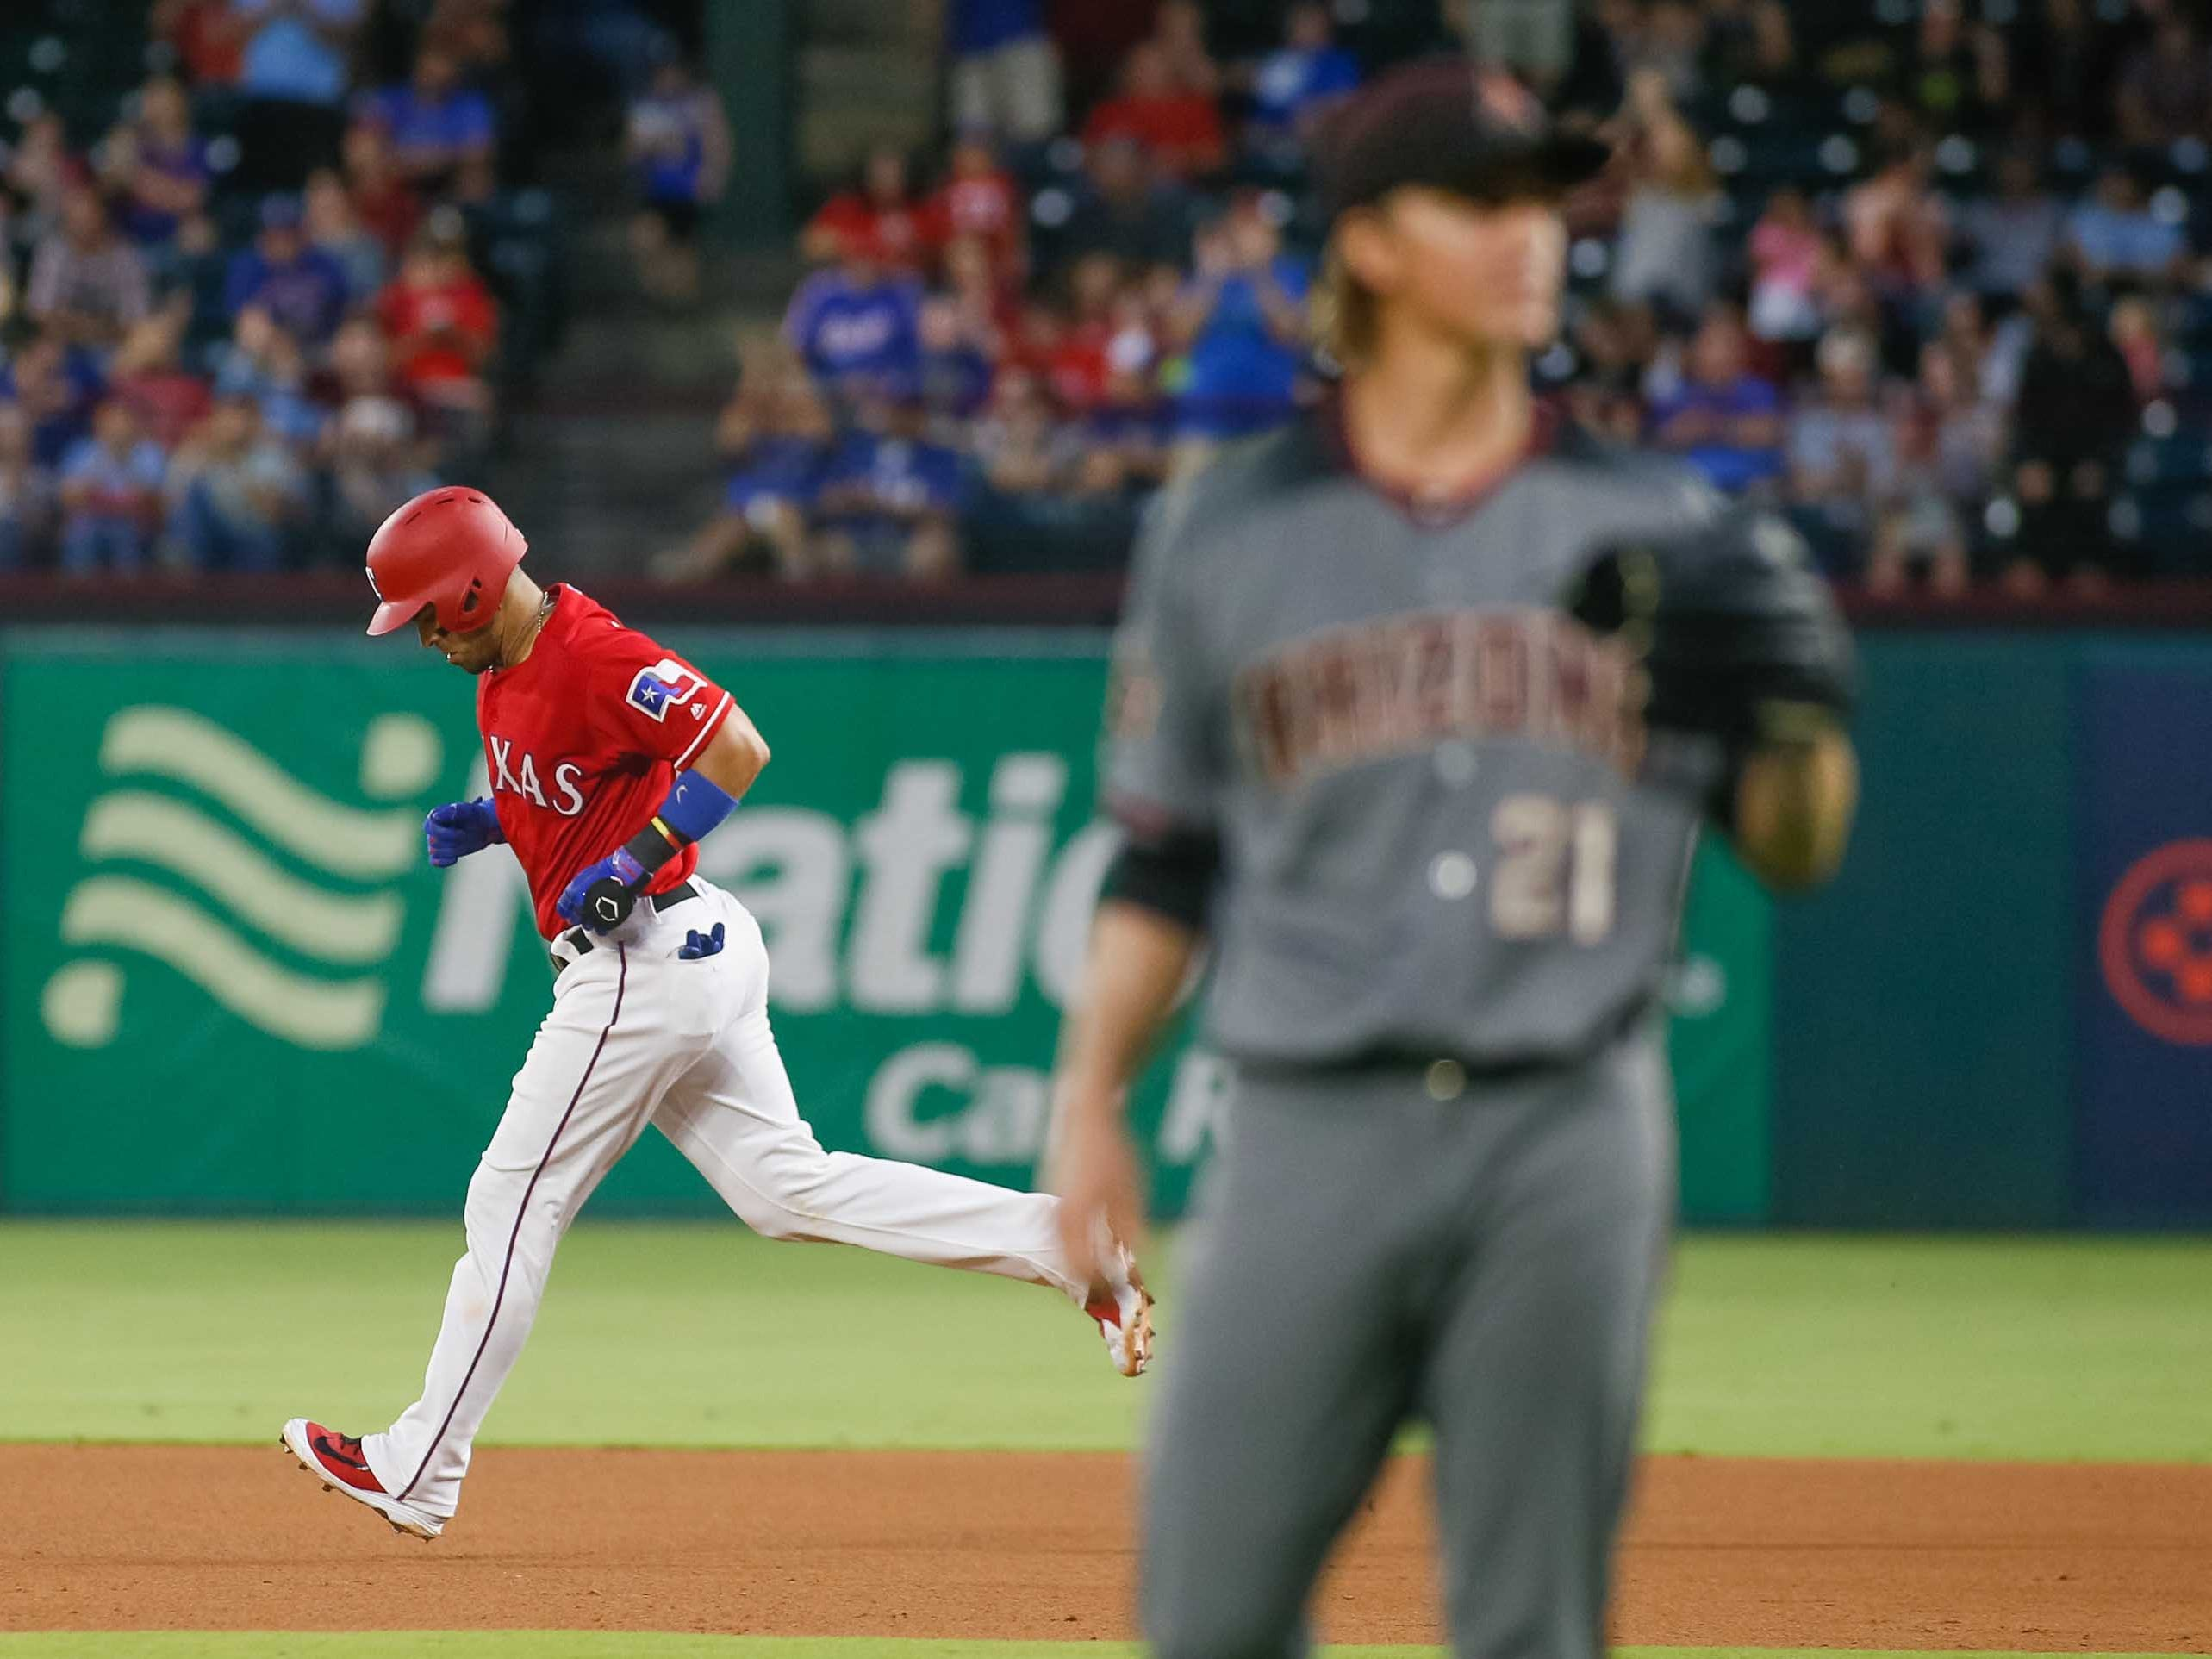 Aug 13, 2018; Arlington, TX, USA; Texas Rangers catcher Robinson Chirinos (61) rounds the bases after hitting a three run homerun off Arizona Diamondbacks starting pitcher Zack Greinke (21) at Globe Life Park in Arlington. Mandatory Credit: Ray Carlin-USA TODAY Sports